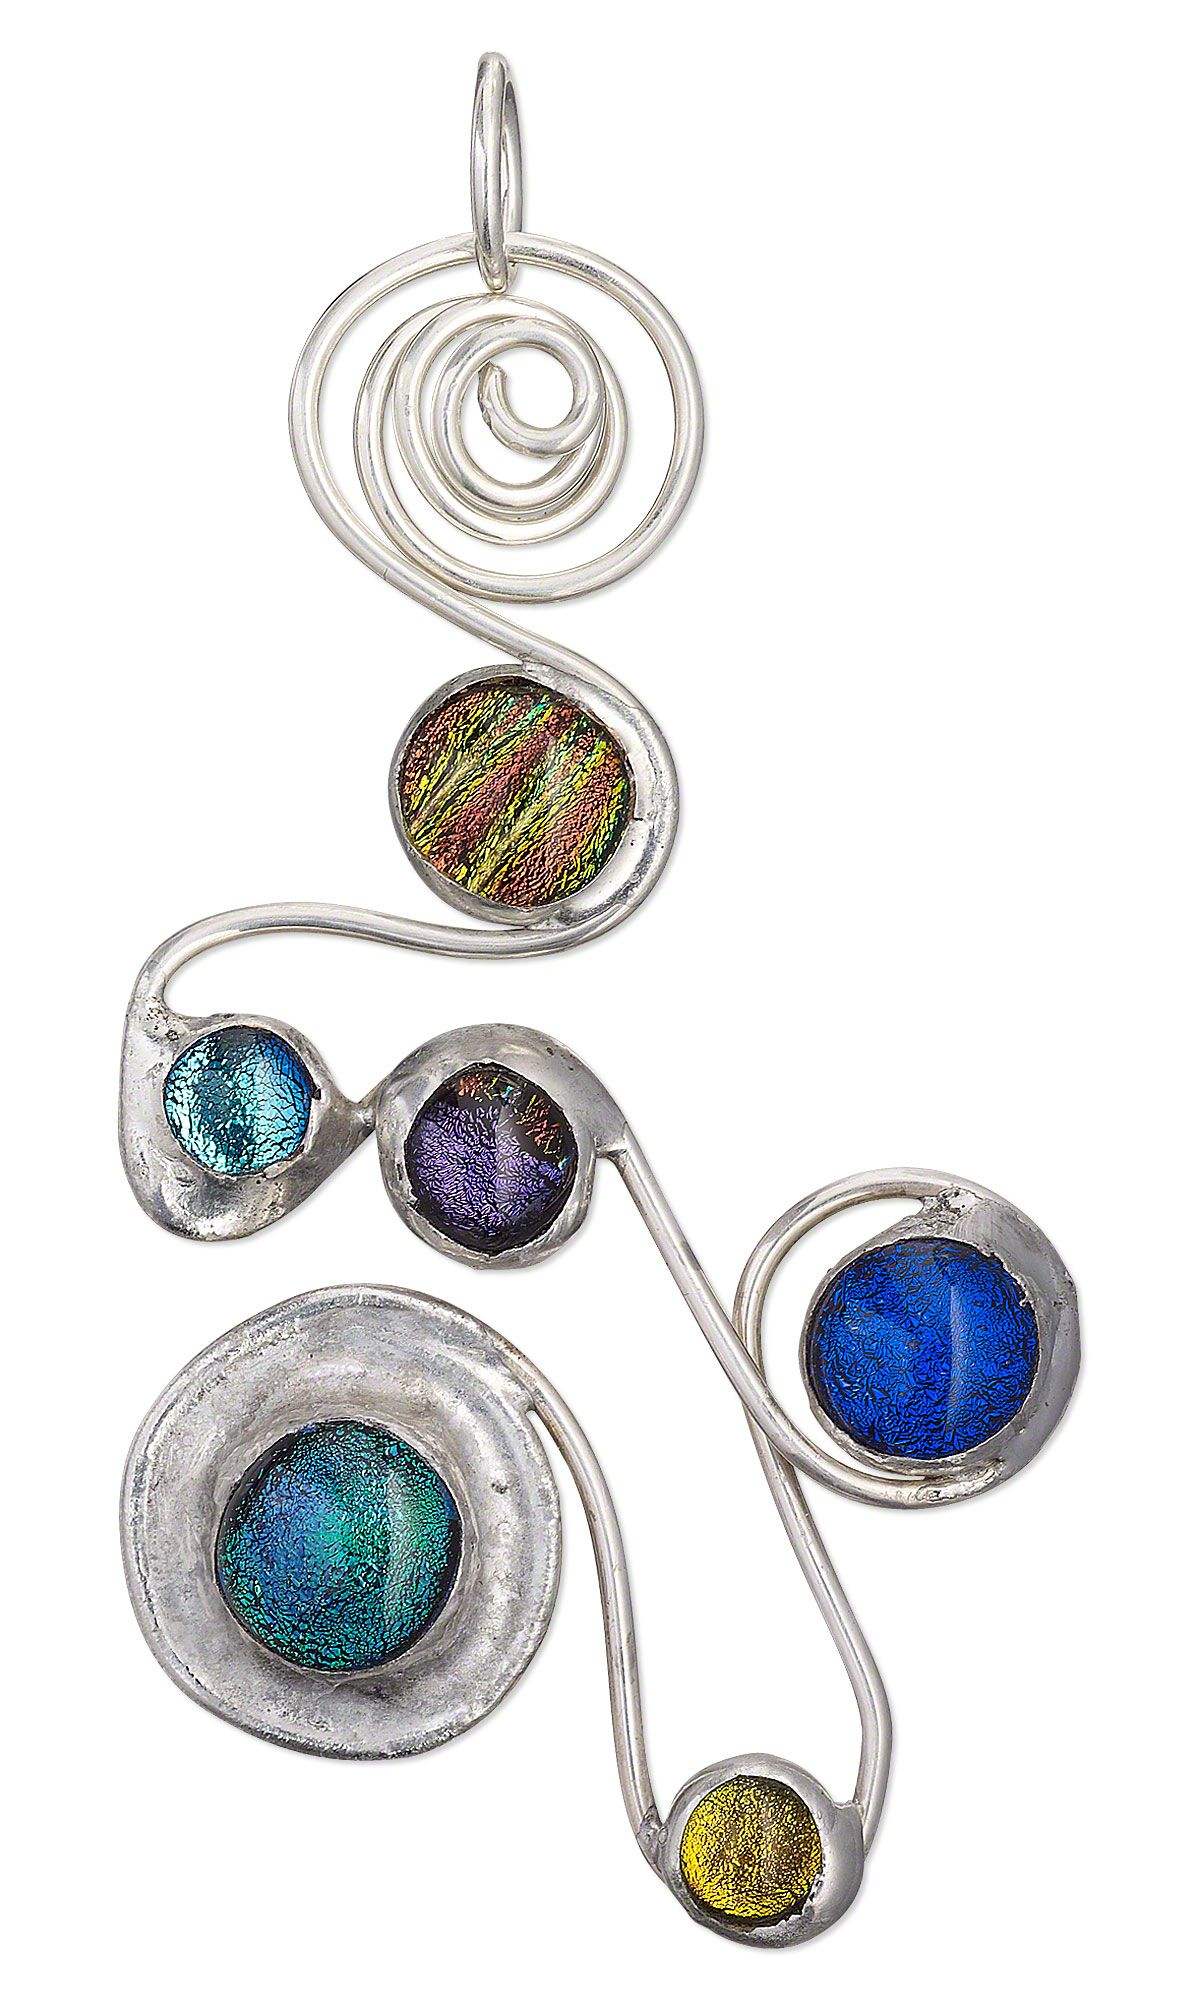 Jewelry Design - Pendant with Dichroic Glass Cabochons and Wirework ...